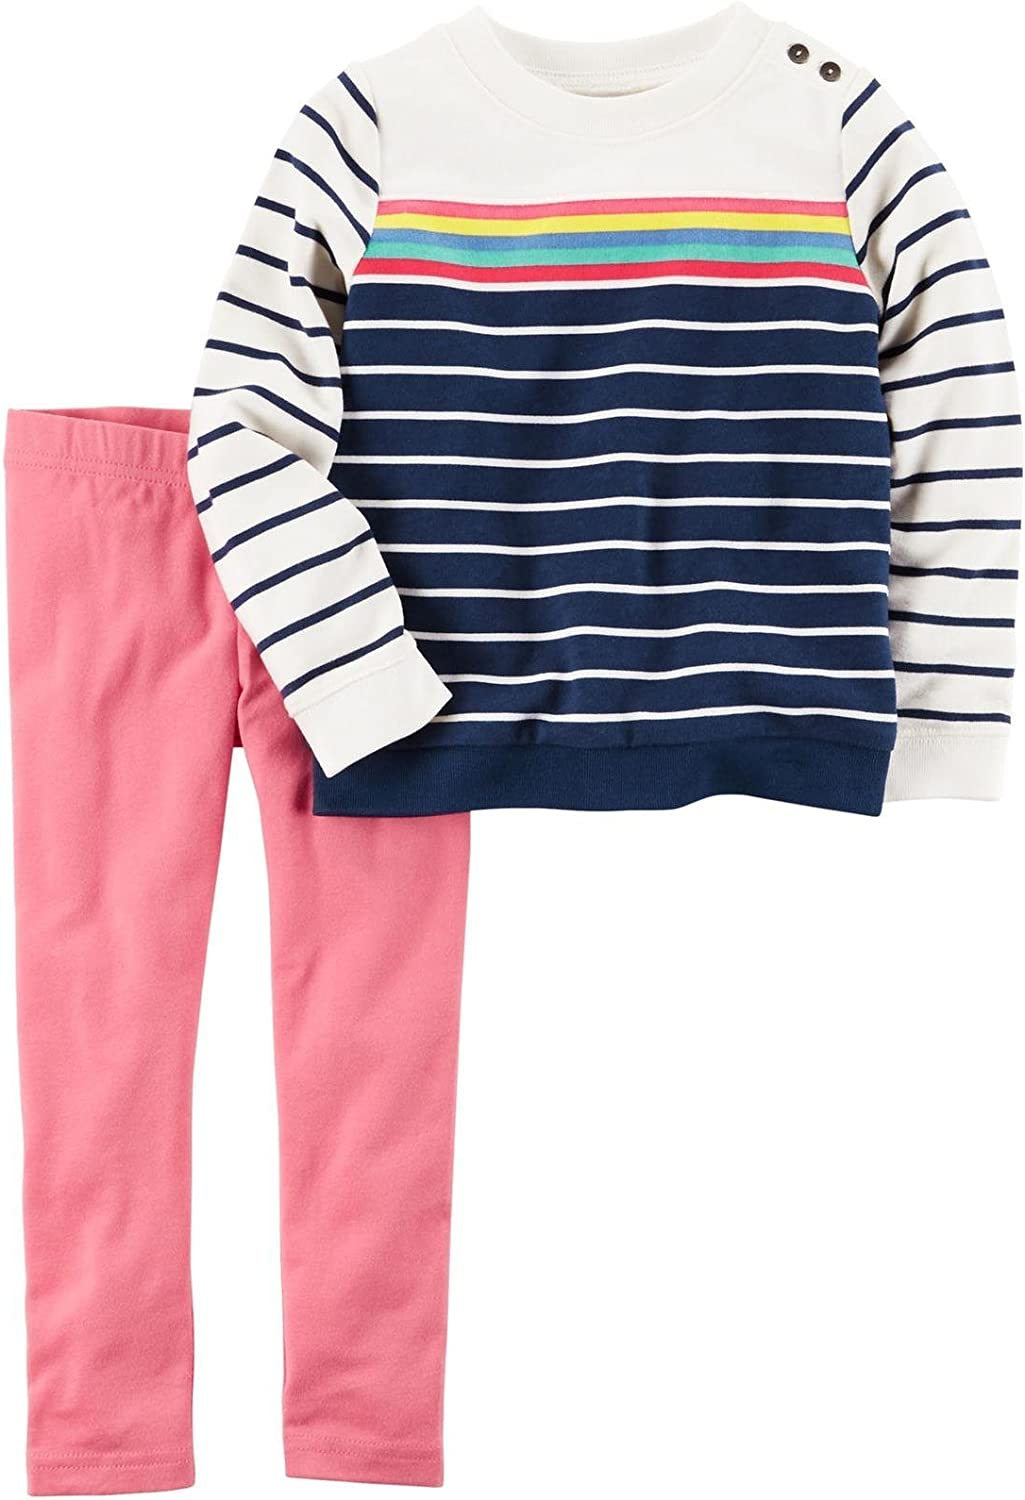 70% OFF Inventory cleanup selling sale Outlet Carter's Girls' 2 Pc Sets Playwear 259g372